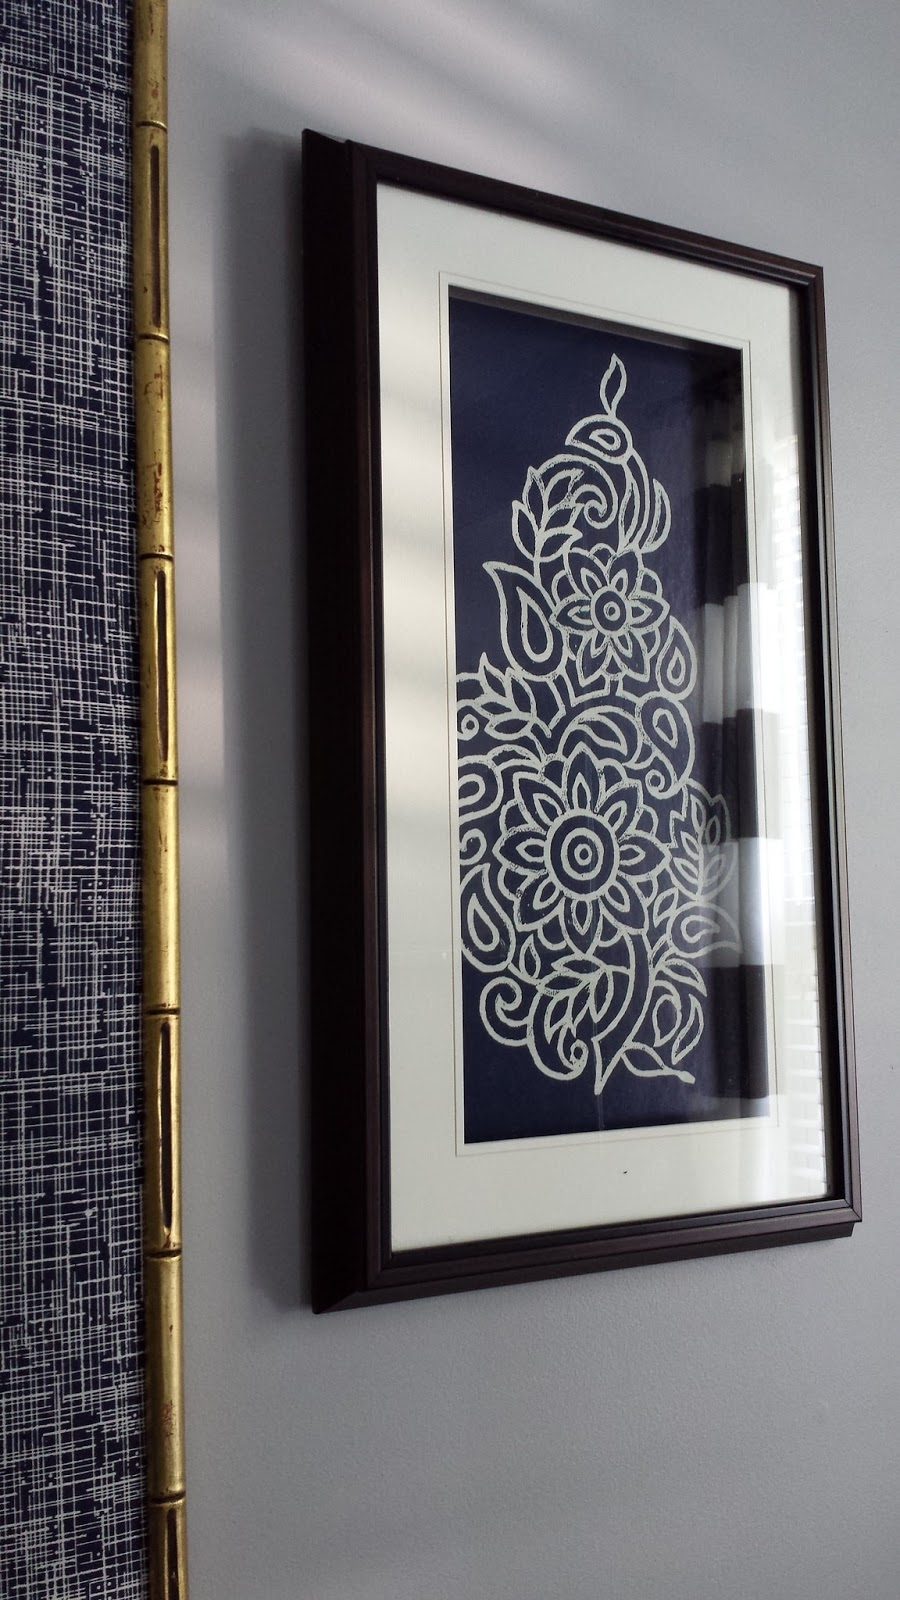 Focal Point Styling: Diy Indigo Wall Art With Framed Fabric Inside Latest Diy Framed Fabric Wall Art (View 6 of 15)